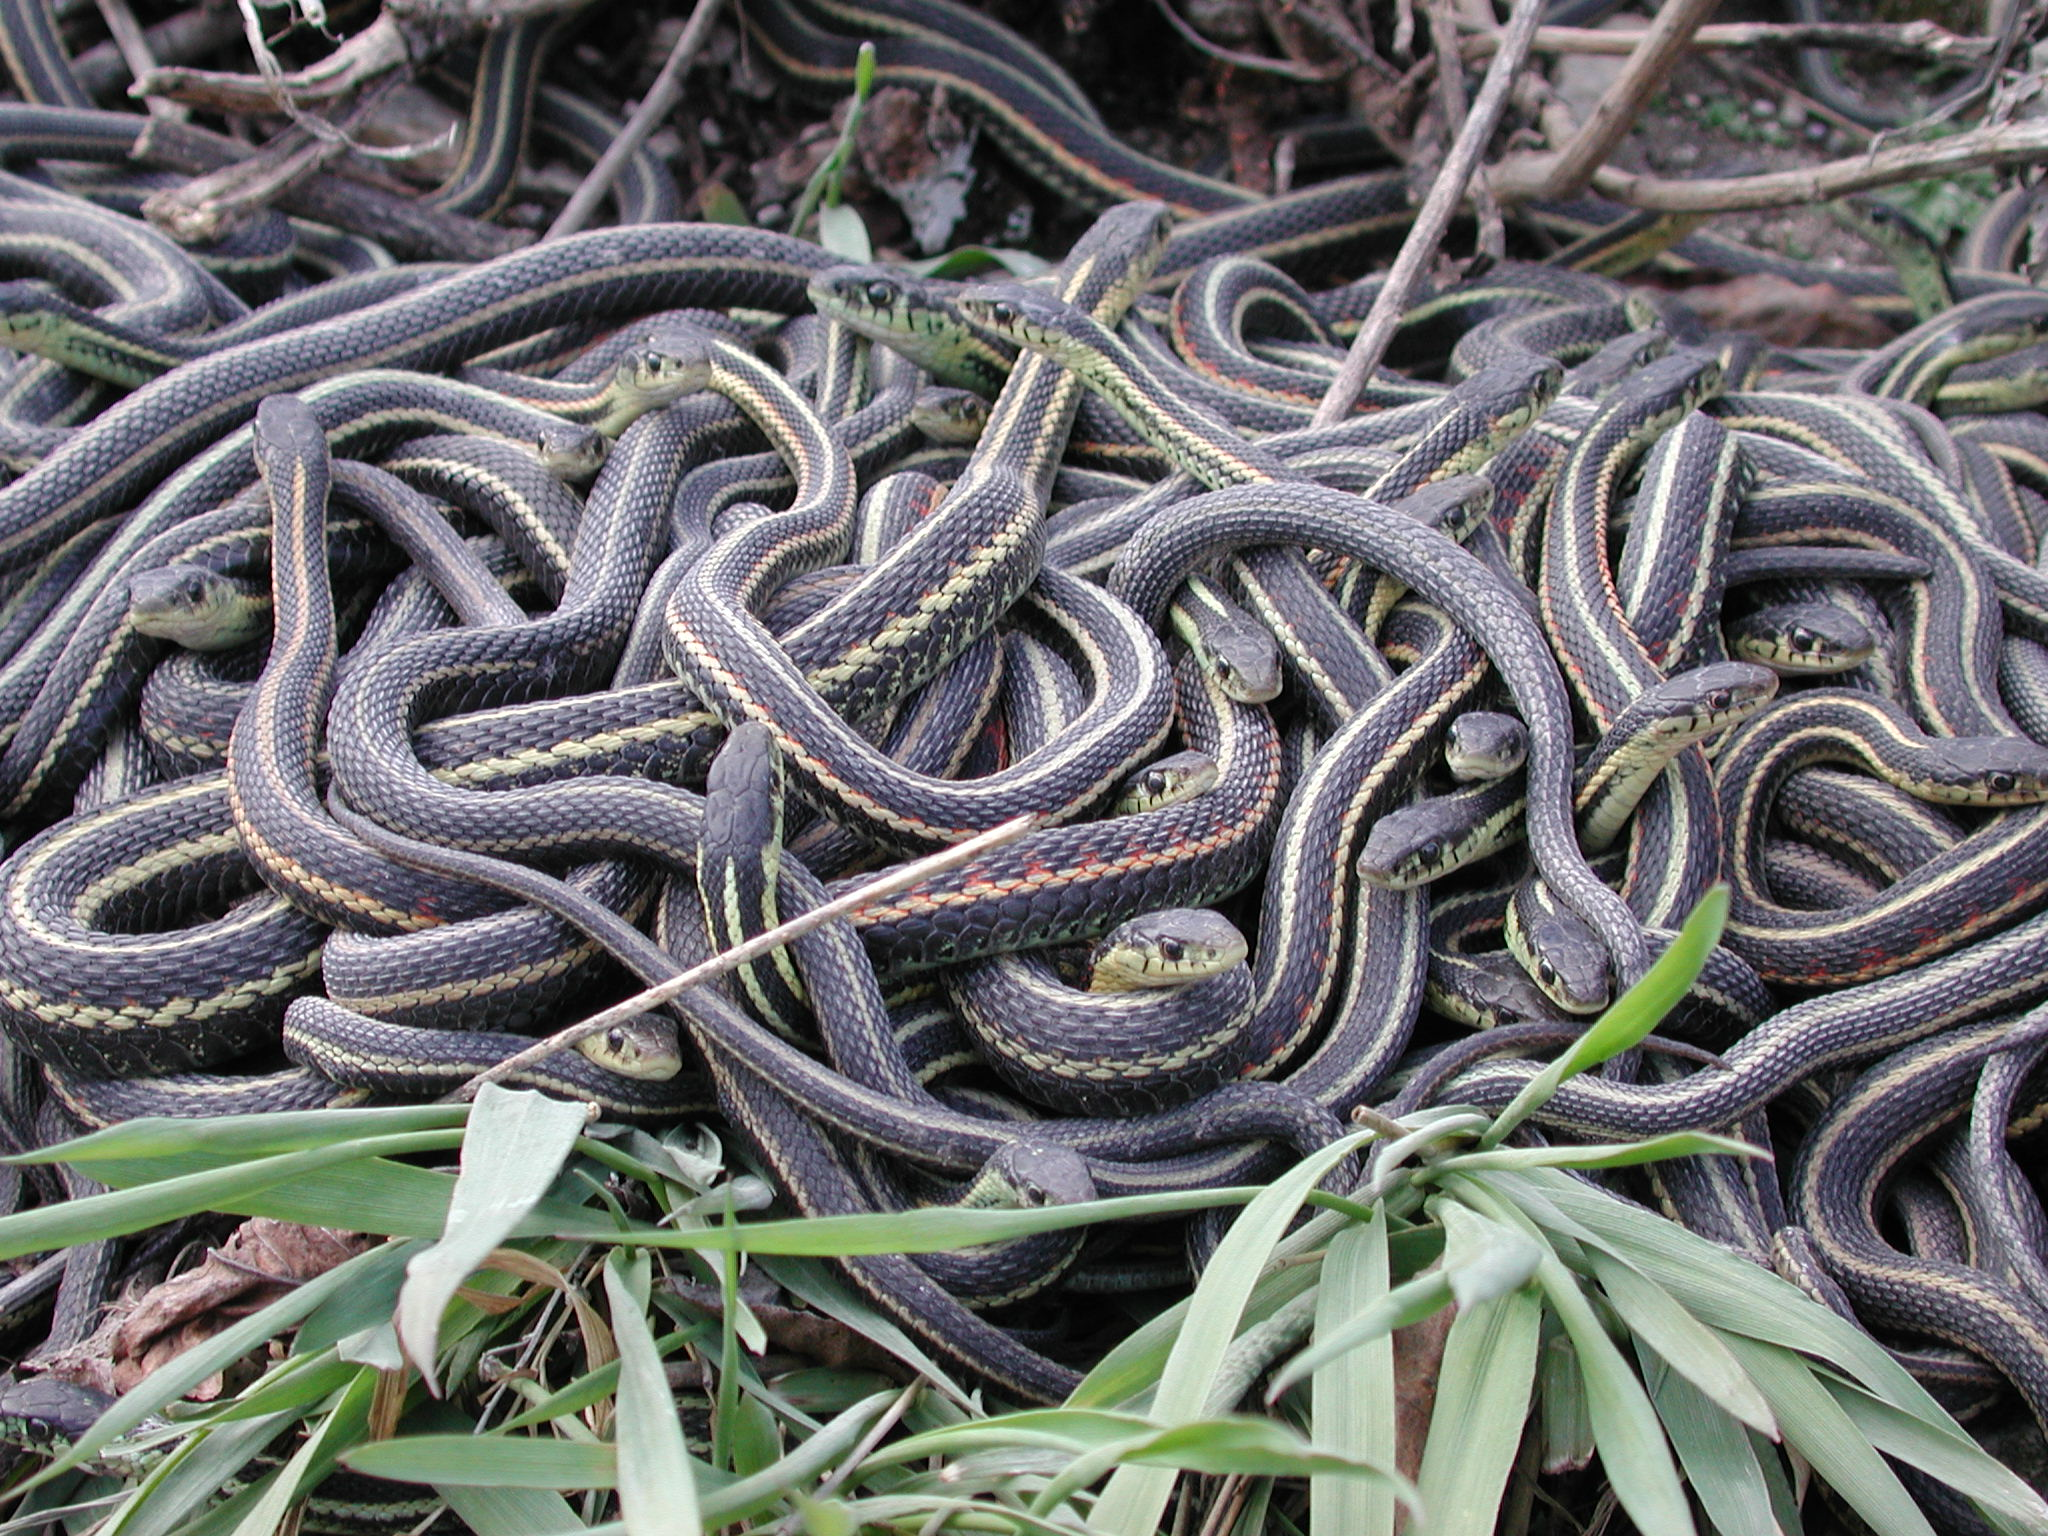 A pile of snakes